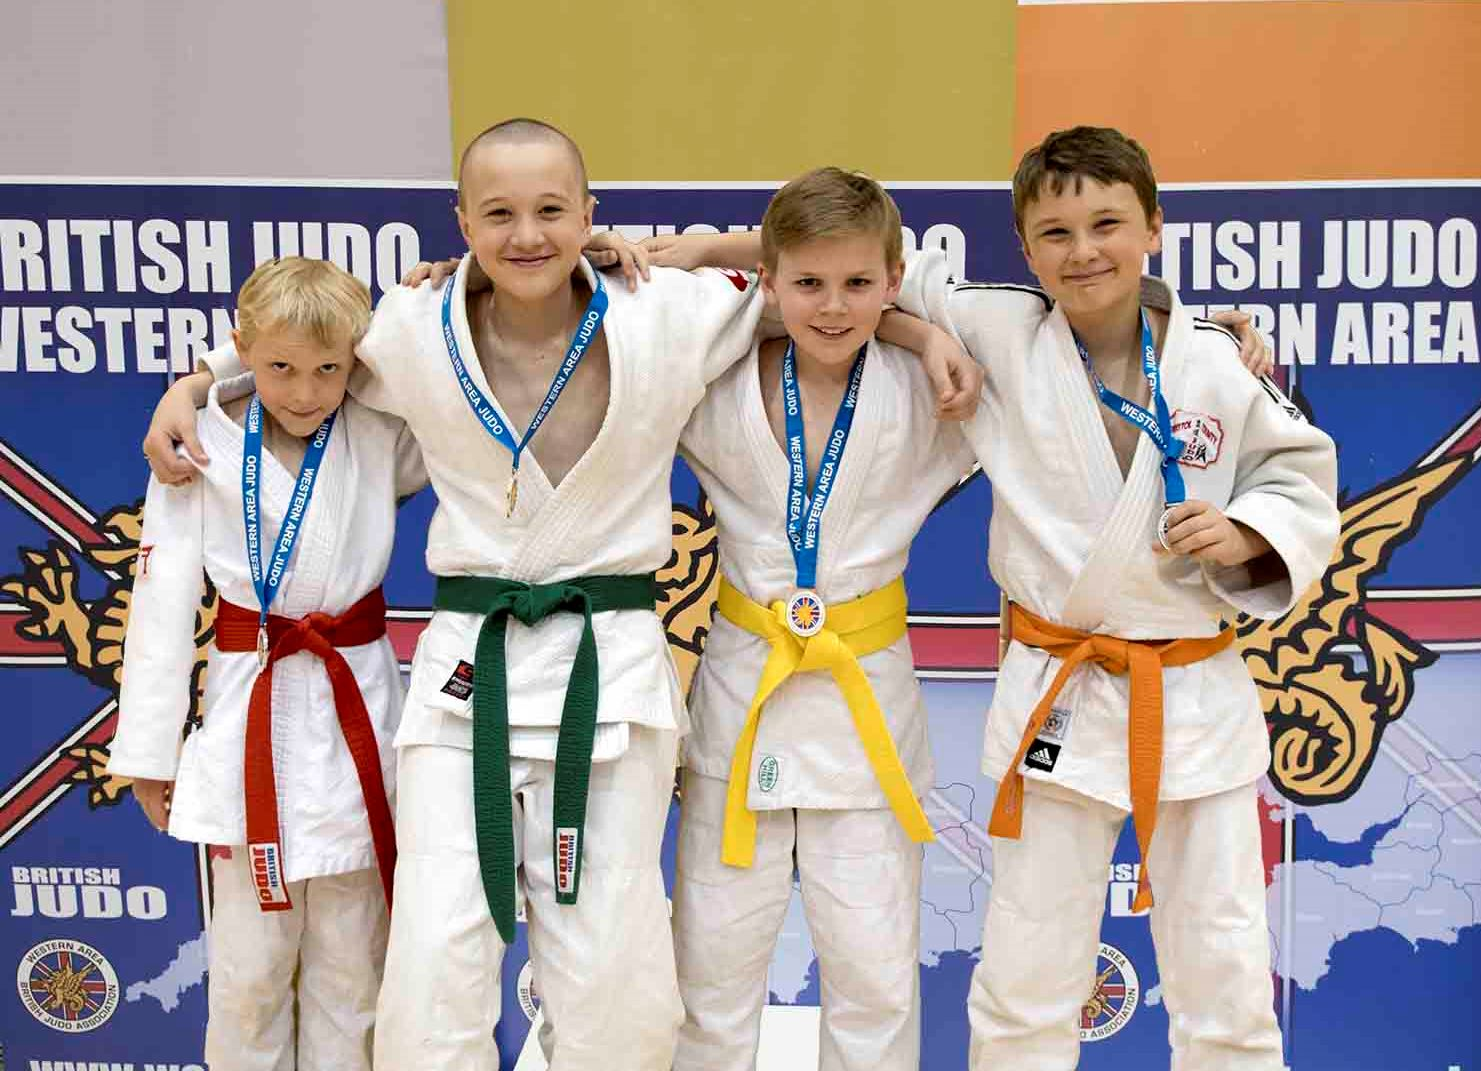 Patchway Judo Club - Home Page